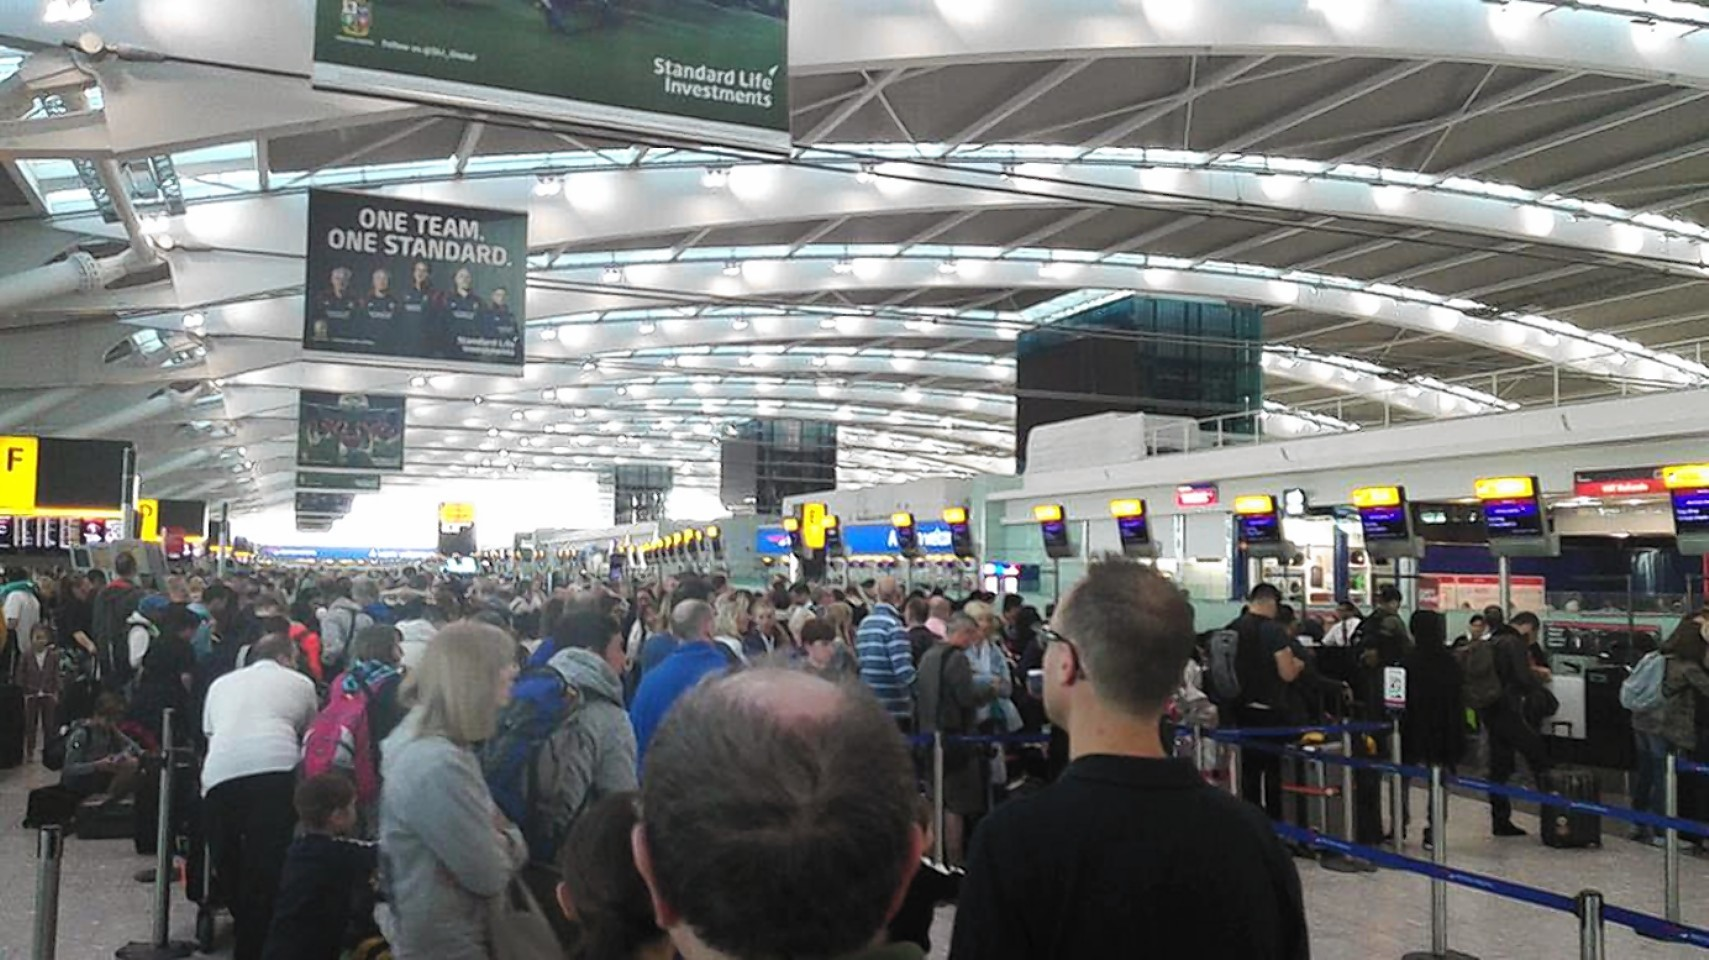 The scene at Heathrow Airport at the weekend following British Airways flight problems